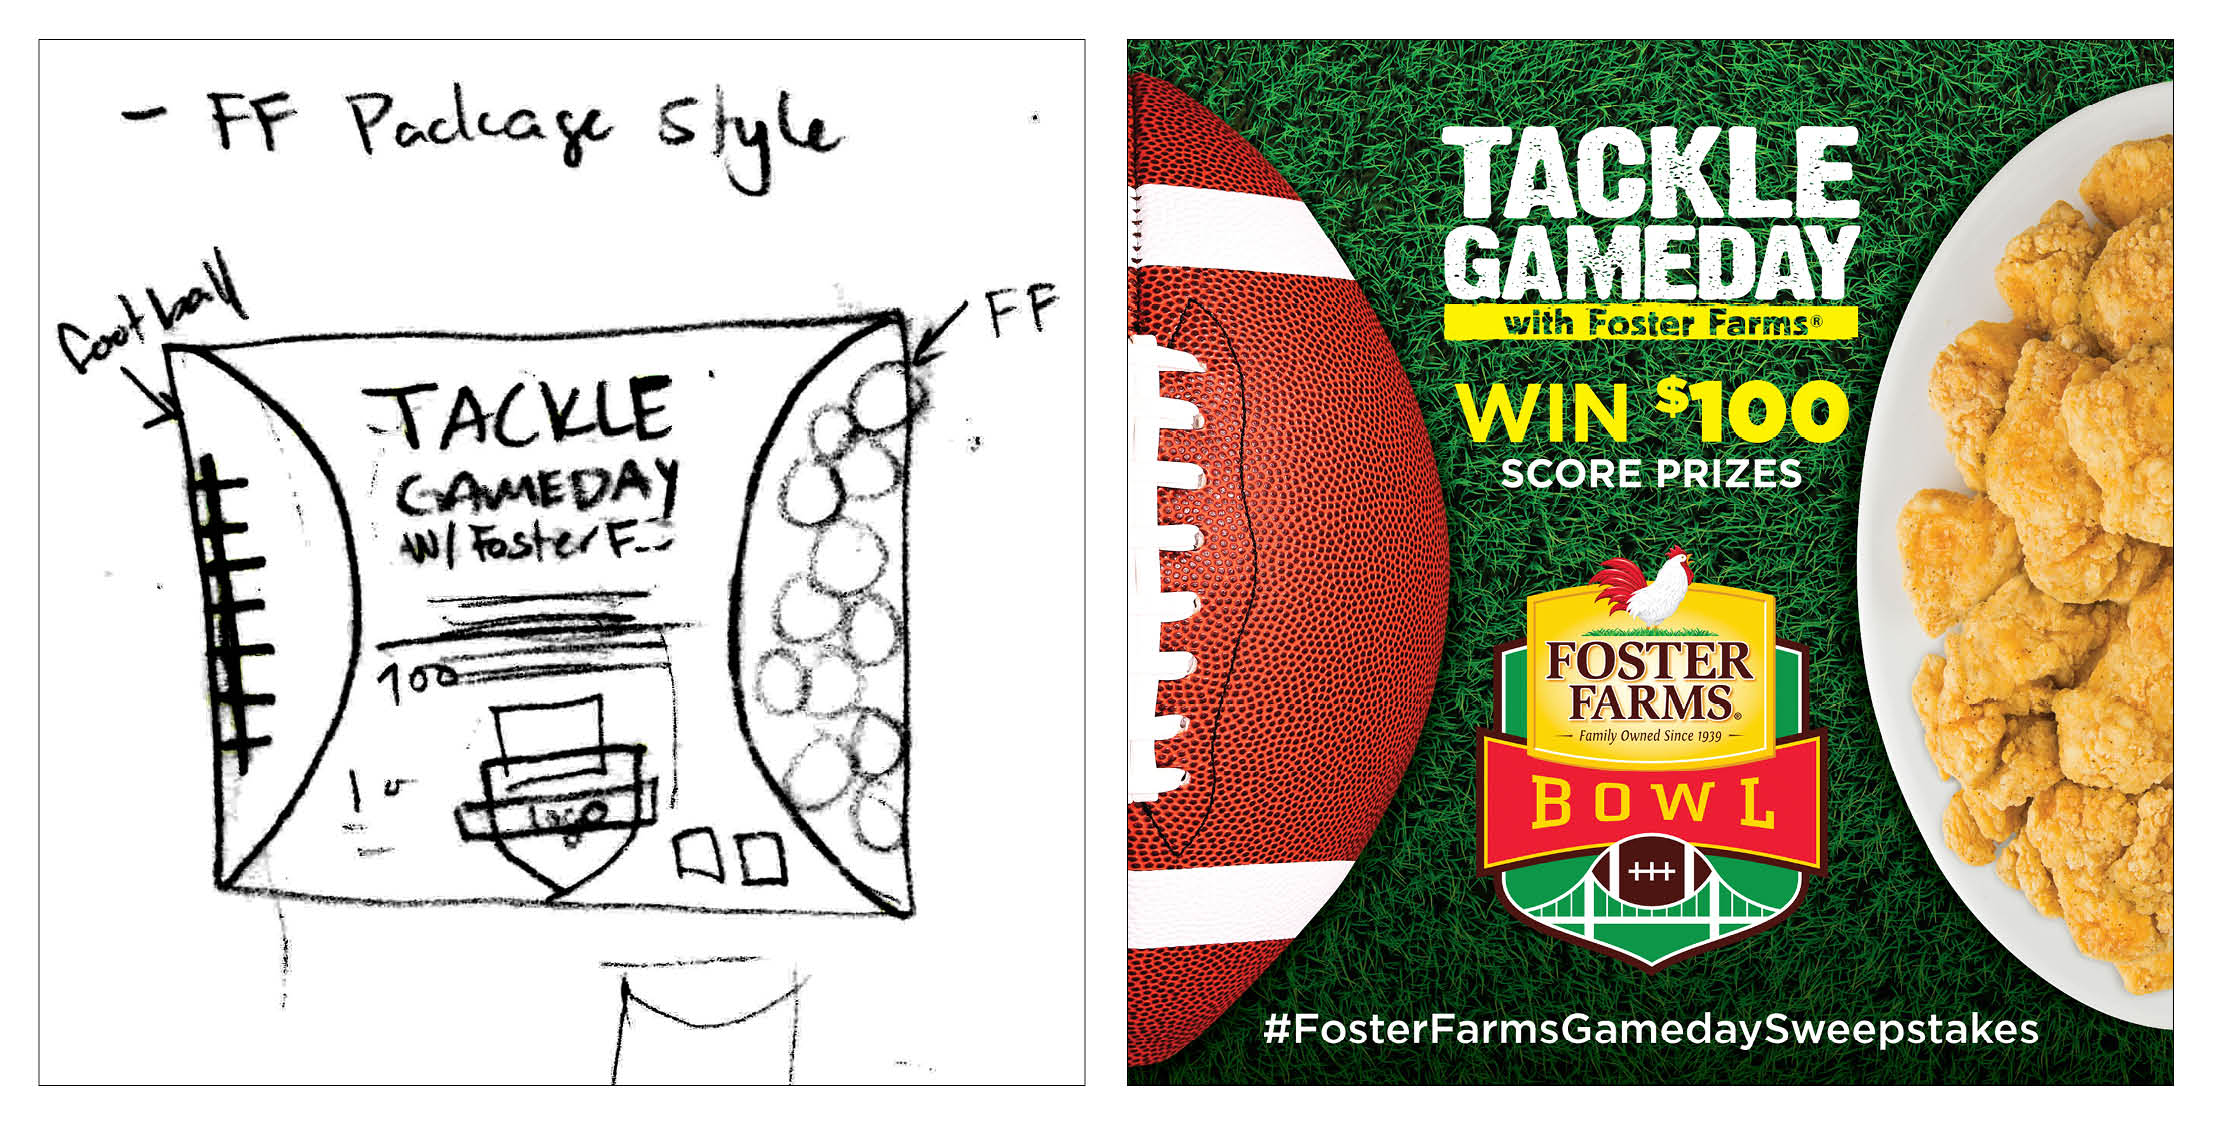 COMPANY: Foster Farms  PROJET: Social Media Posts  MY ROLE: Created and executed concepts for Foster Farms Gameday Campaign with direction from the marketing team. Platforms included Facebook, Instagram and Twitter.